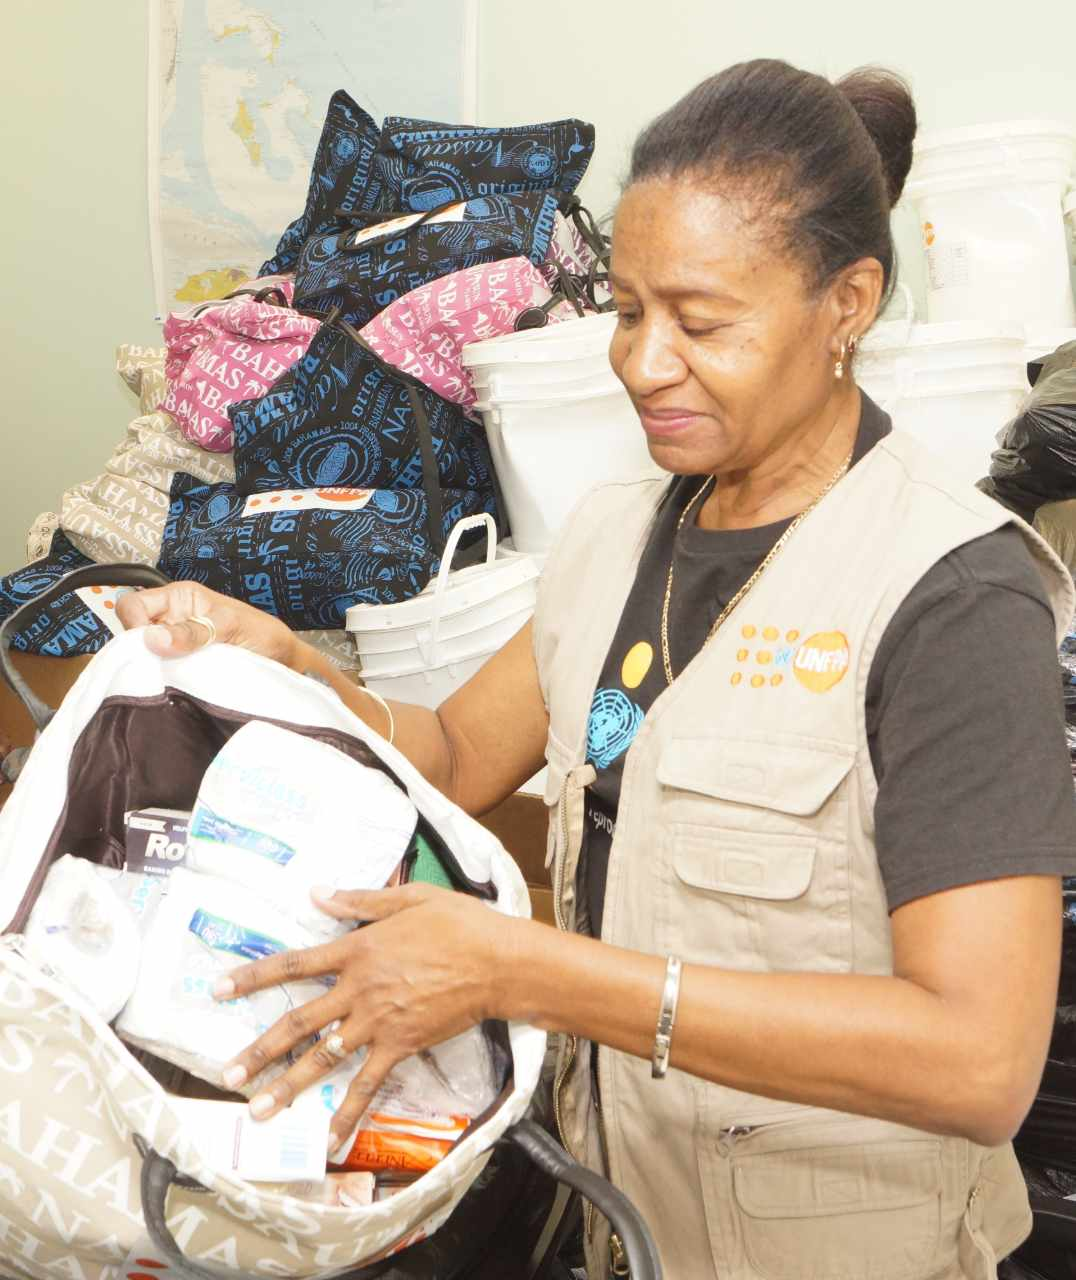 UNFPA staff member in the Bahamas